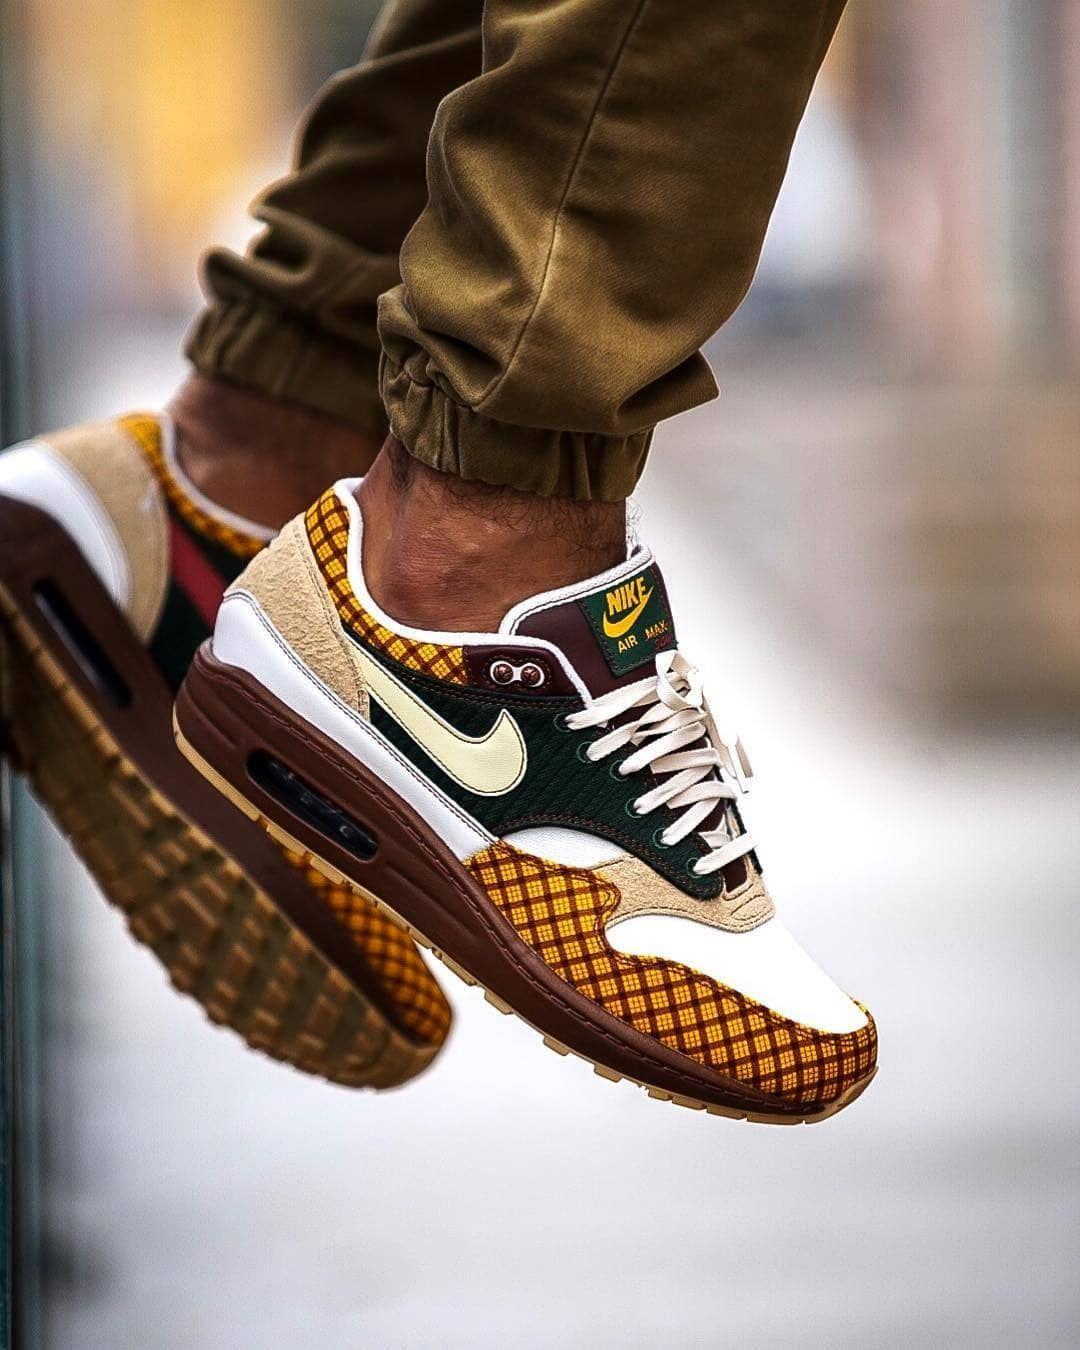 Sneakhamddict Wearing The Air Max 1 Susan Hashtag Epsilonmagazine Or Tag Us To G Sneakers Men Fashion Nike Air Shoes Sneakers